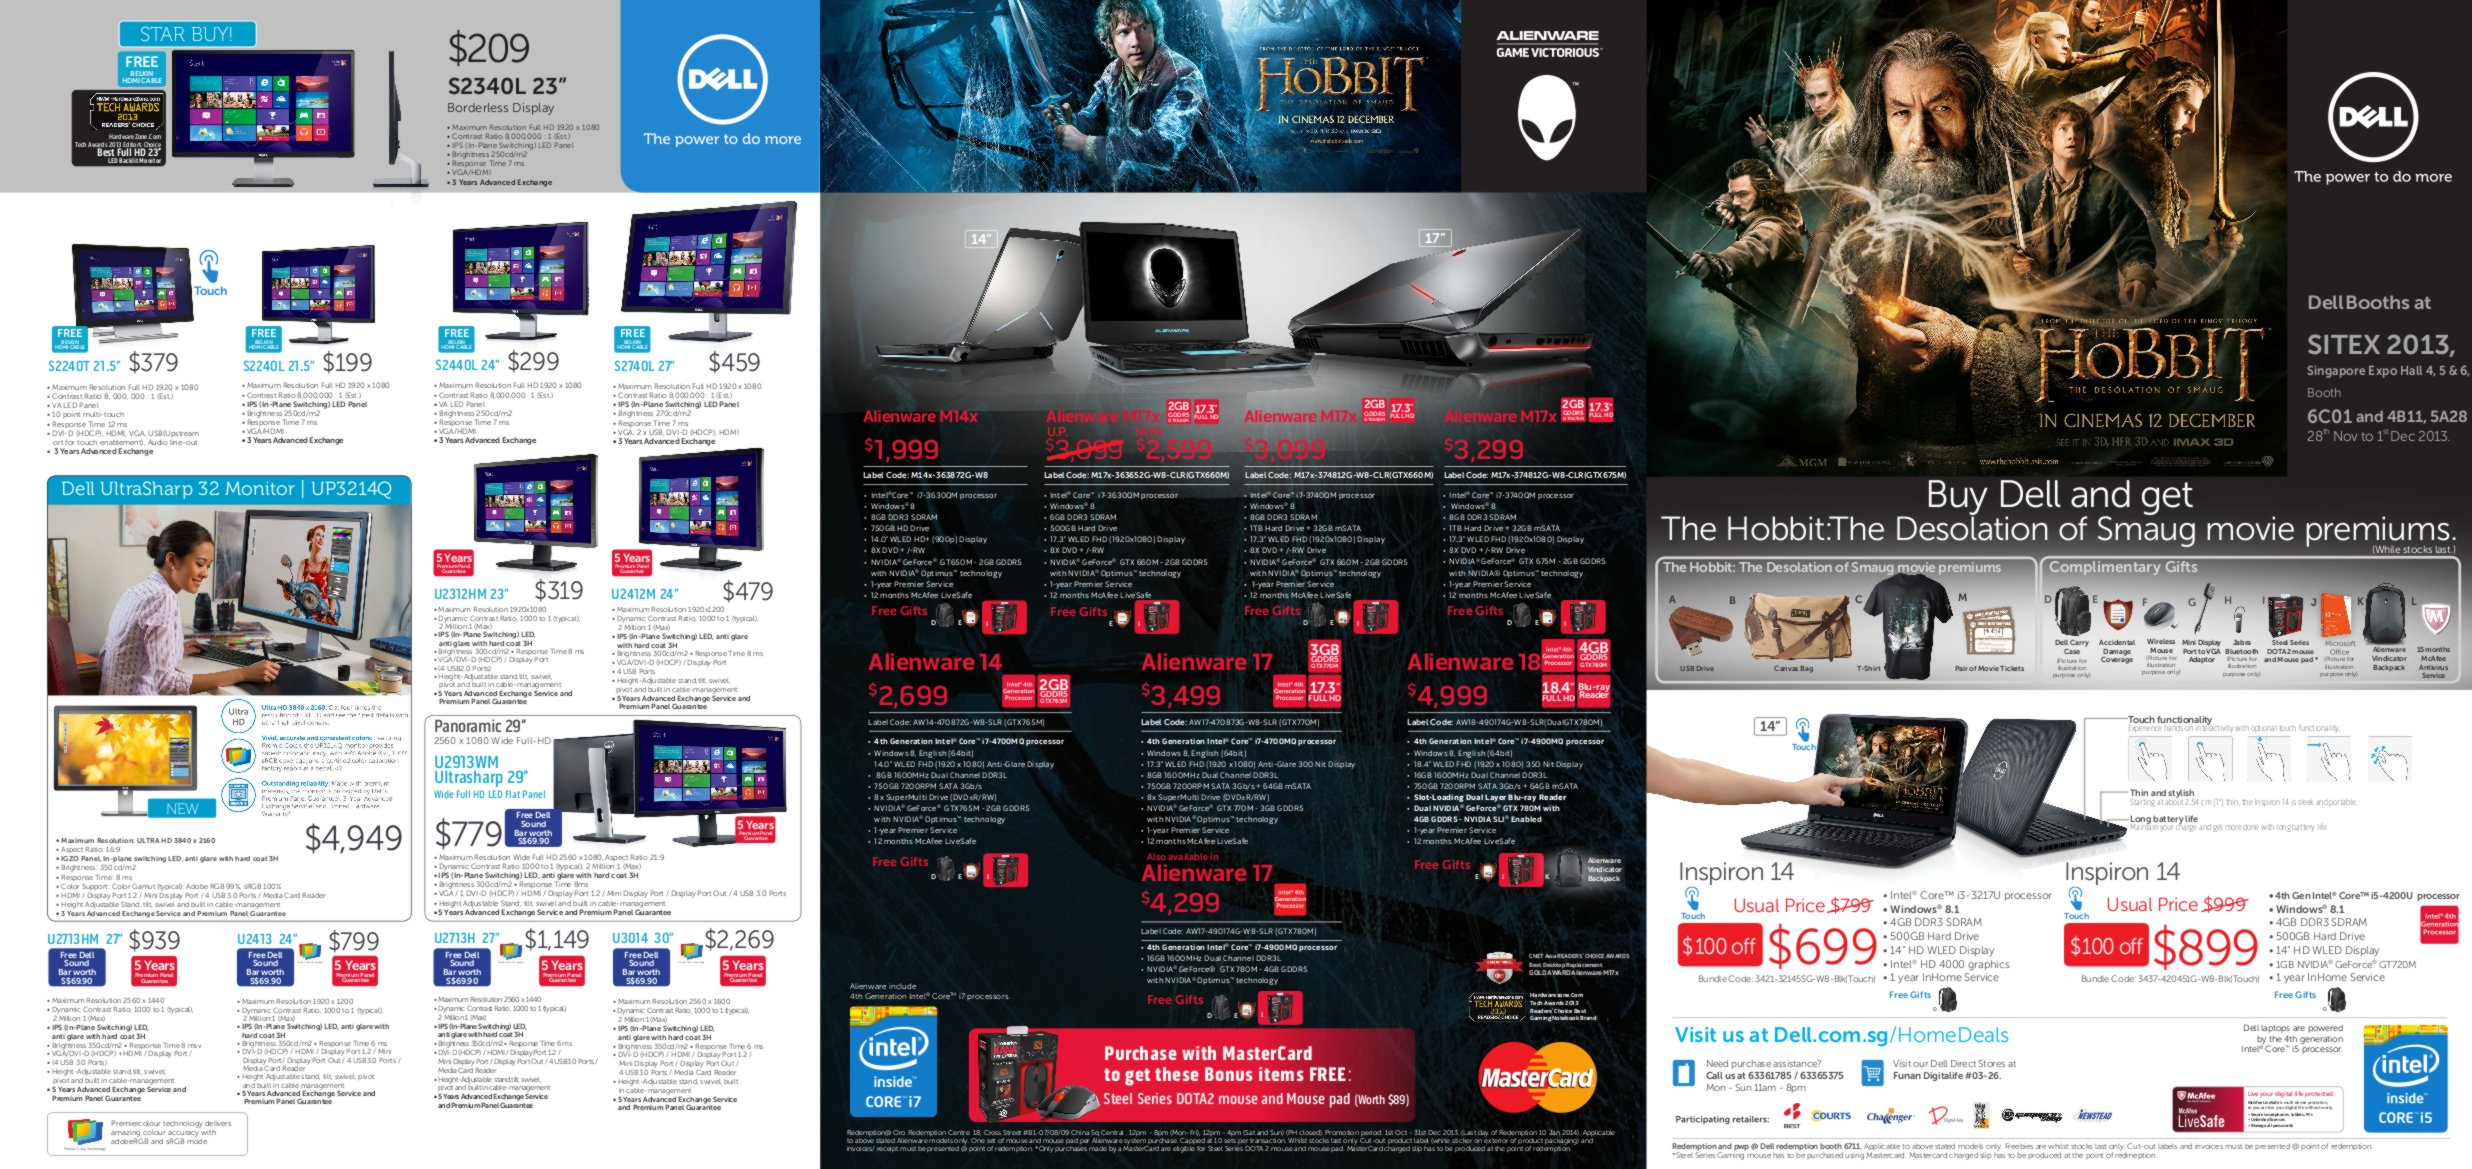 SITEX 2013 - DELL Flyers - Page 1